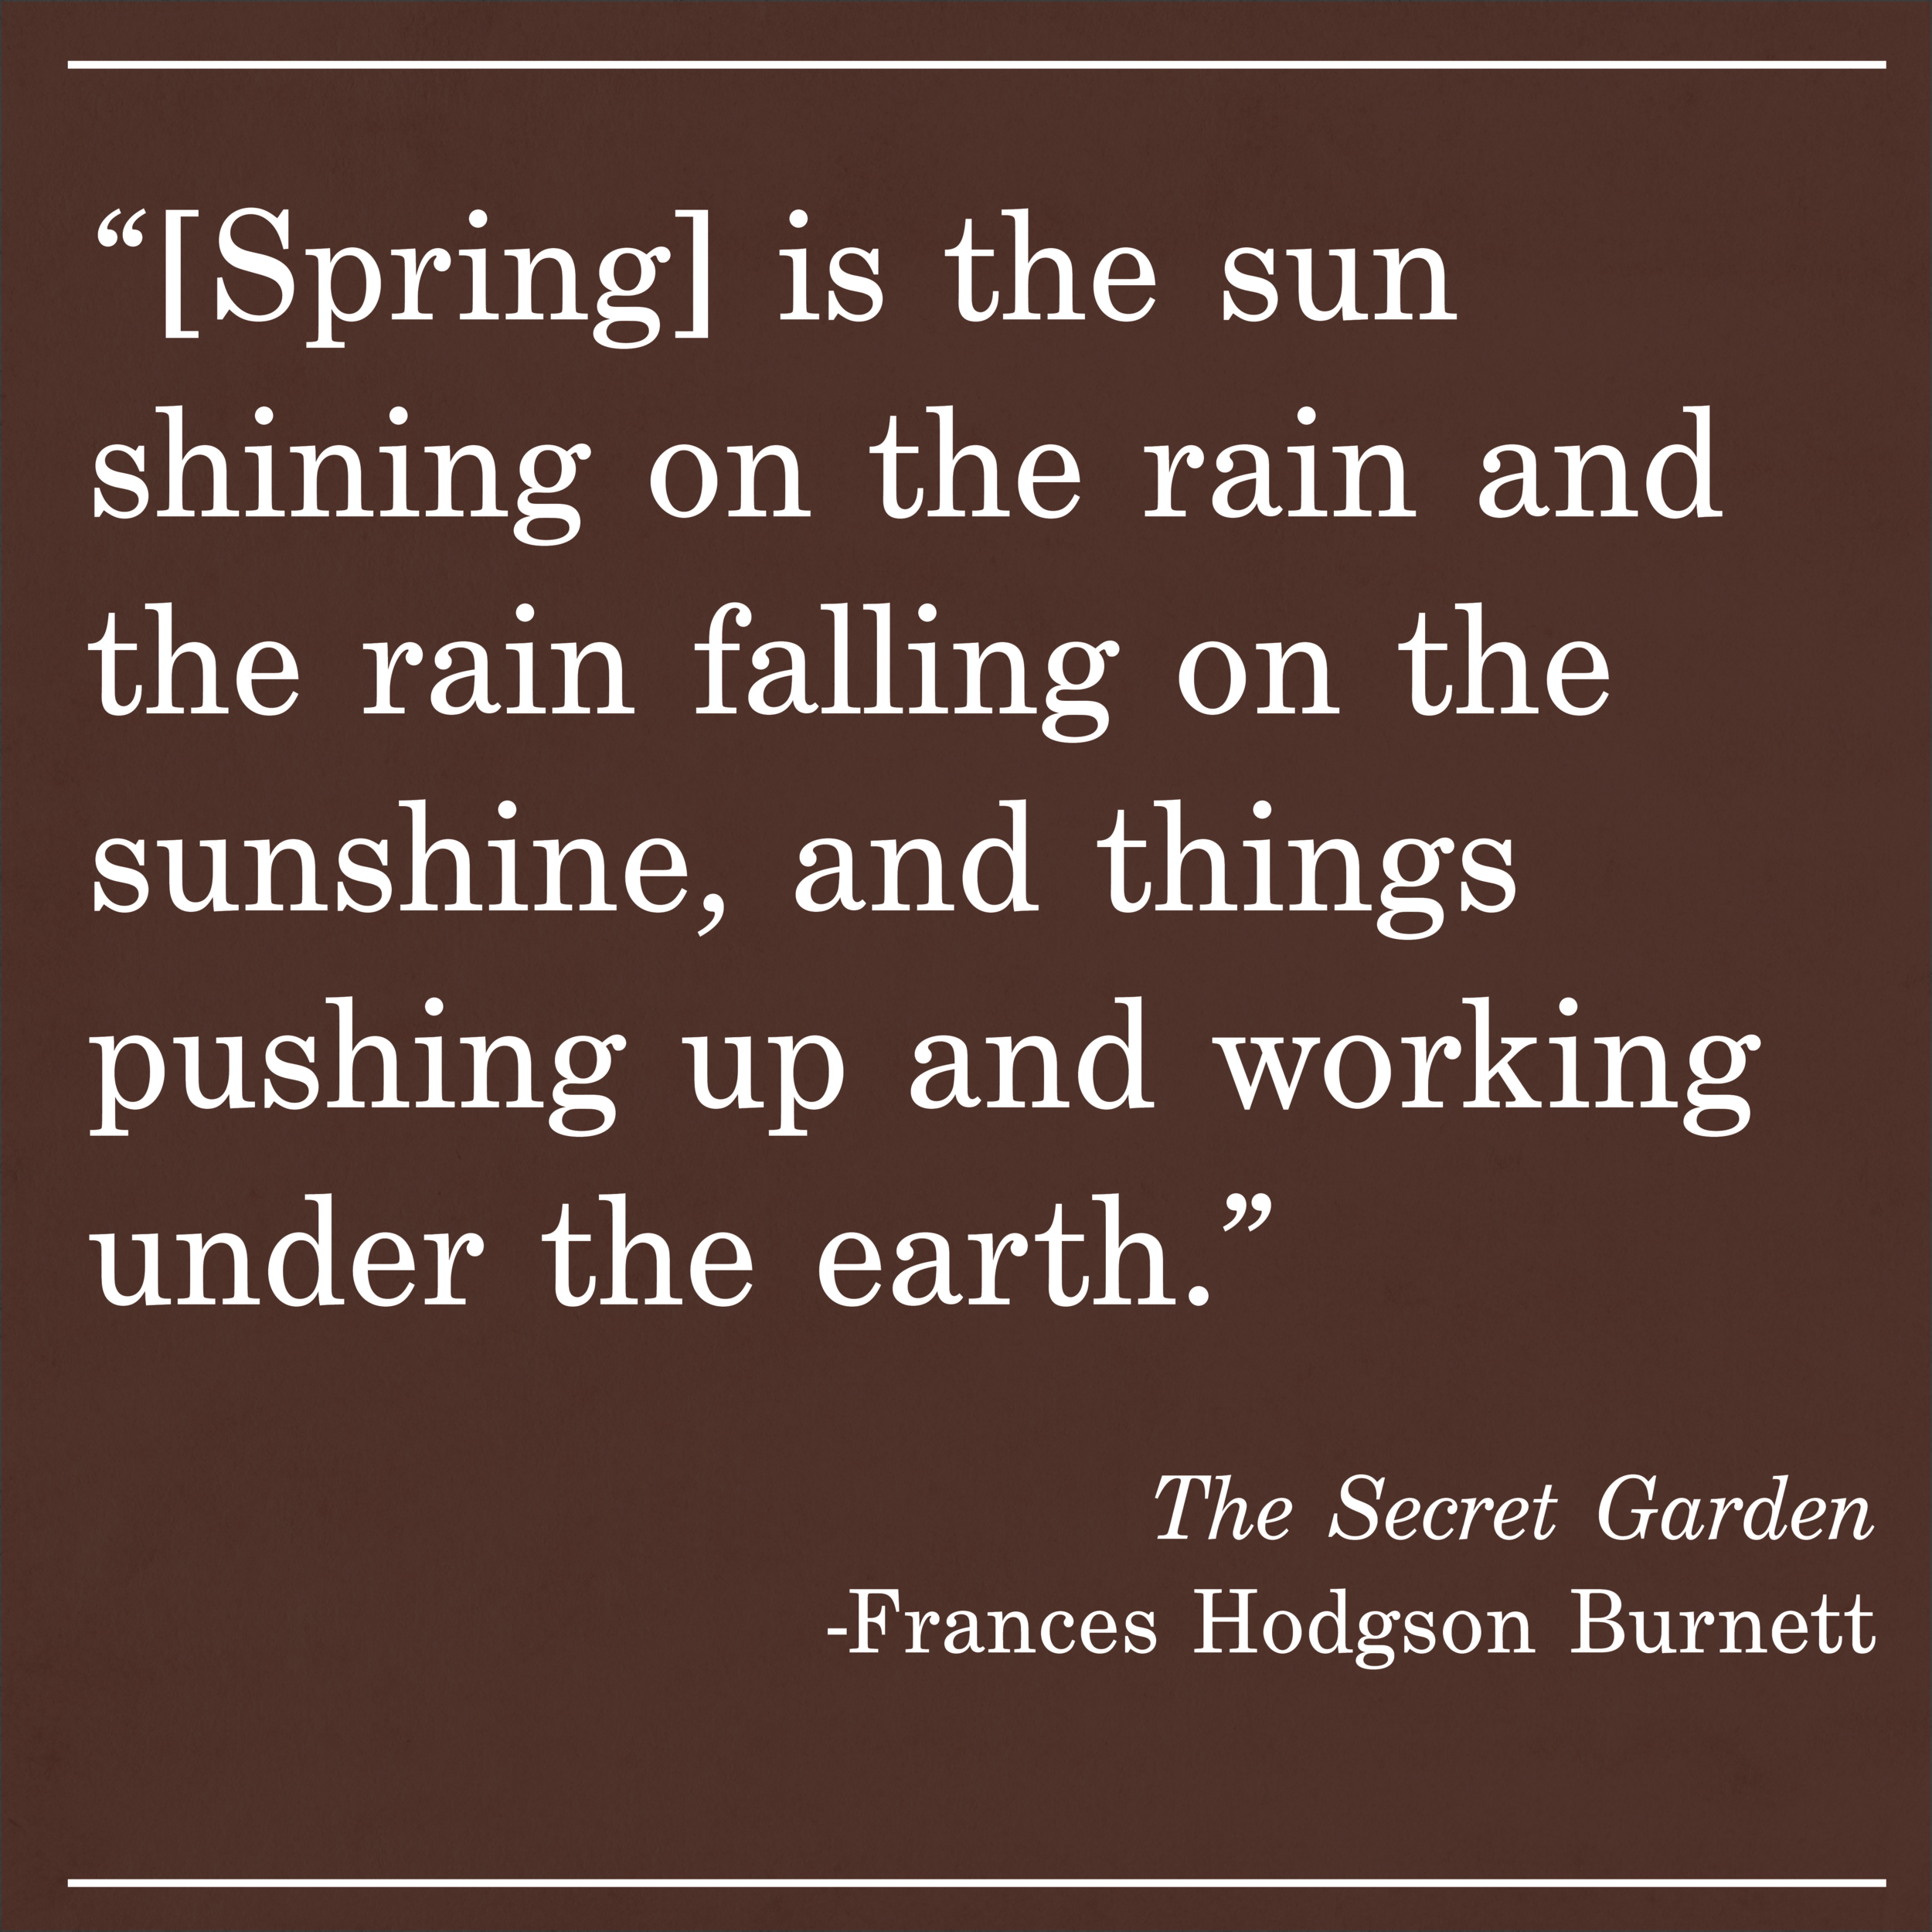 Daily Quote The Secret Garden by Frances Hodgson Burnett